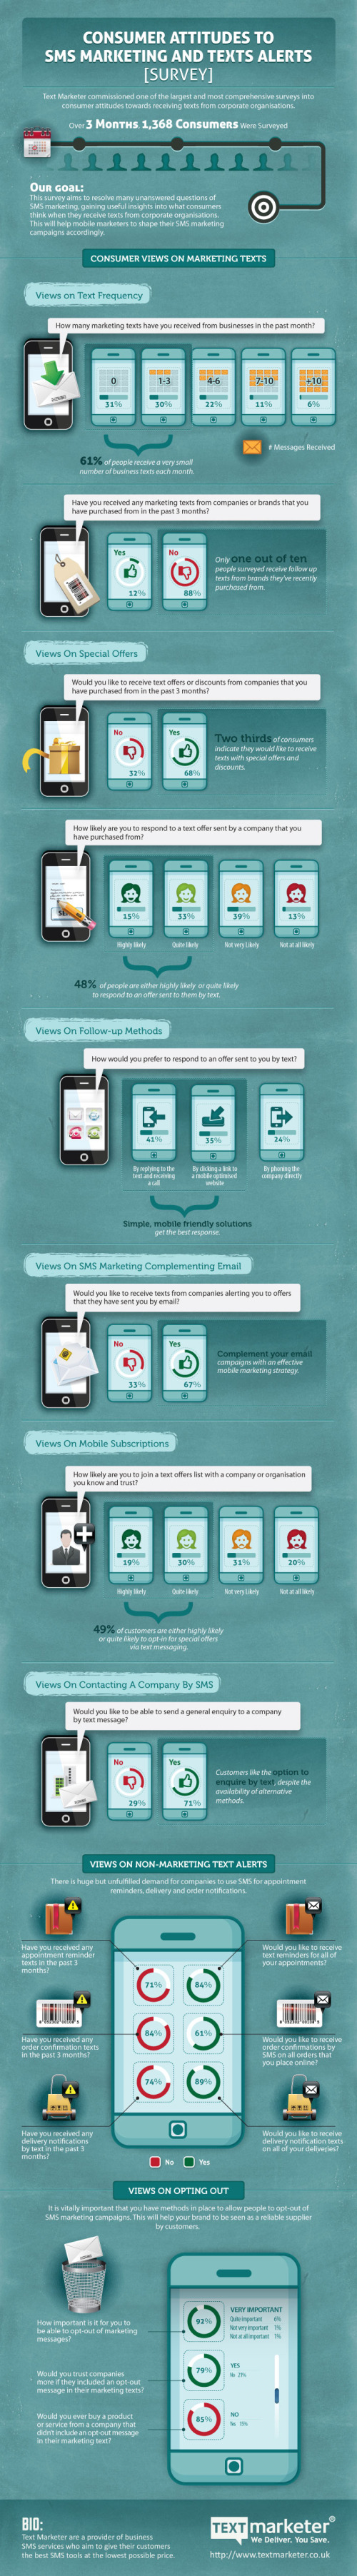 Consumer Attitudes to SMS Marketing and Texts Alerts infographic